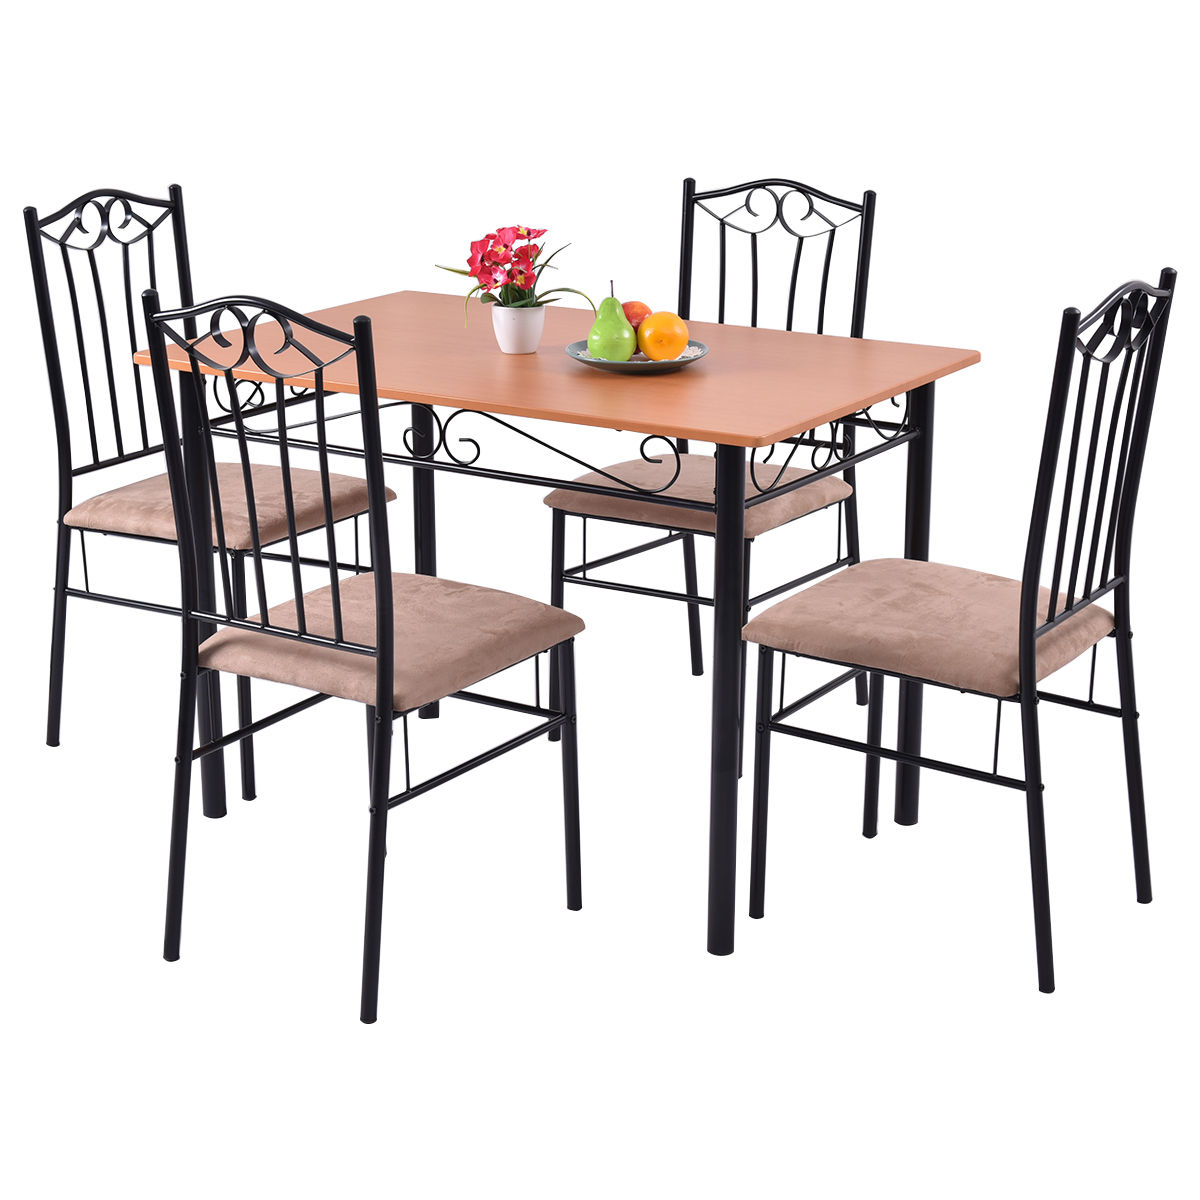 Click here to buy Costway 5 PC Dining Room Set Wood Metal Table and 4 Chairs Kitchen Breakfast Furniture by Costway.